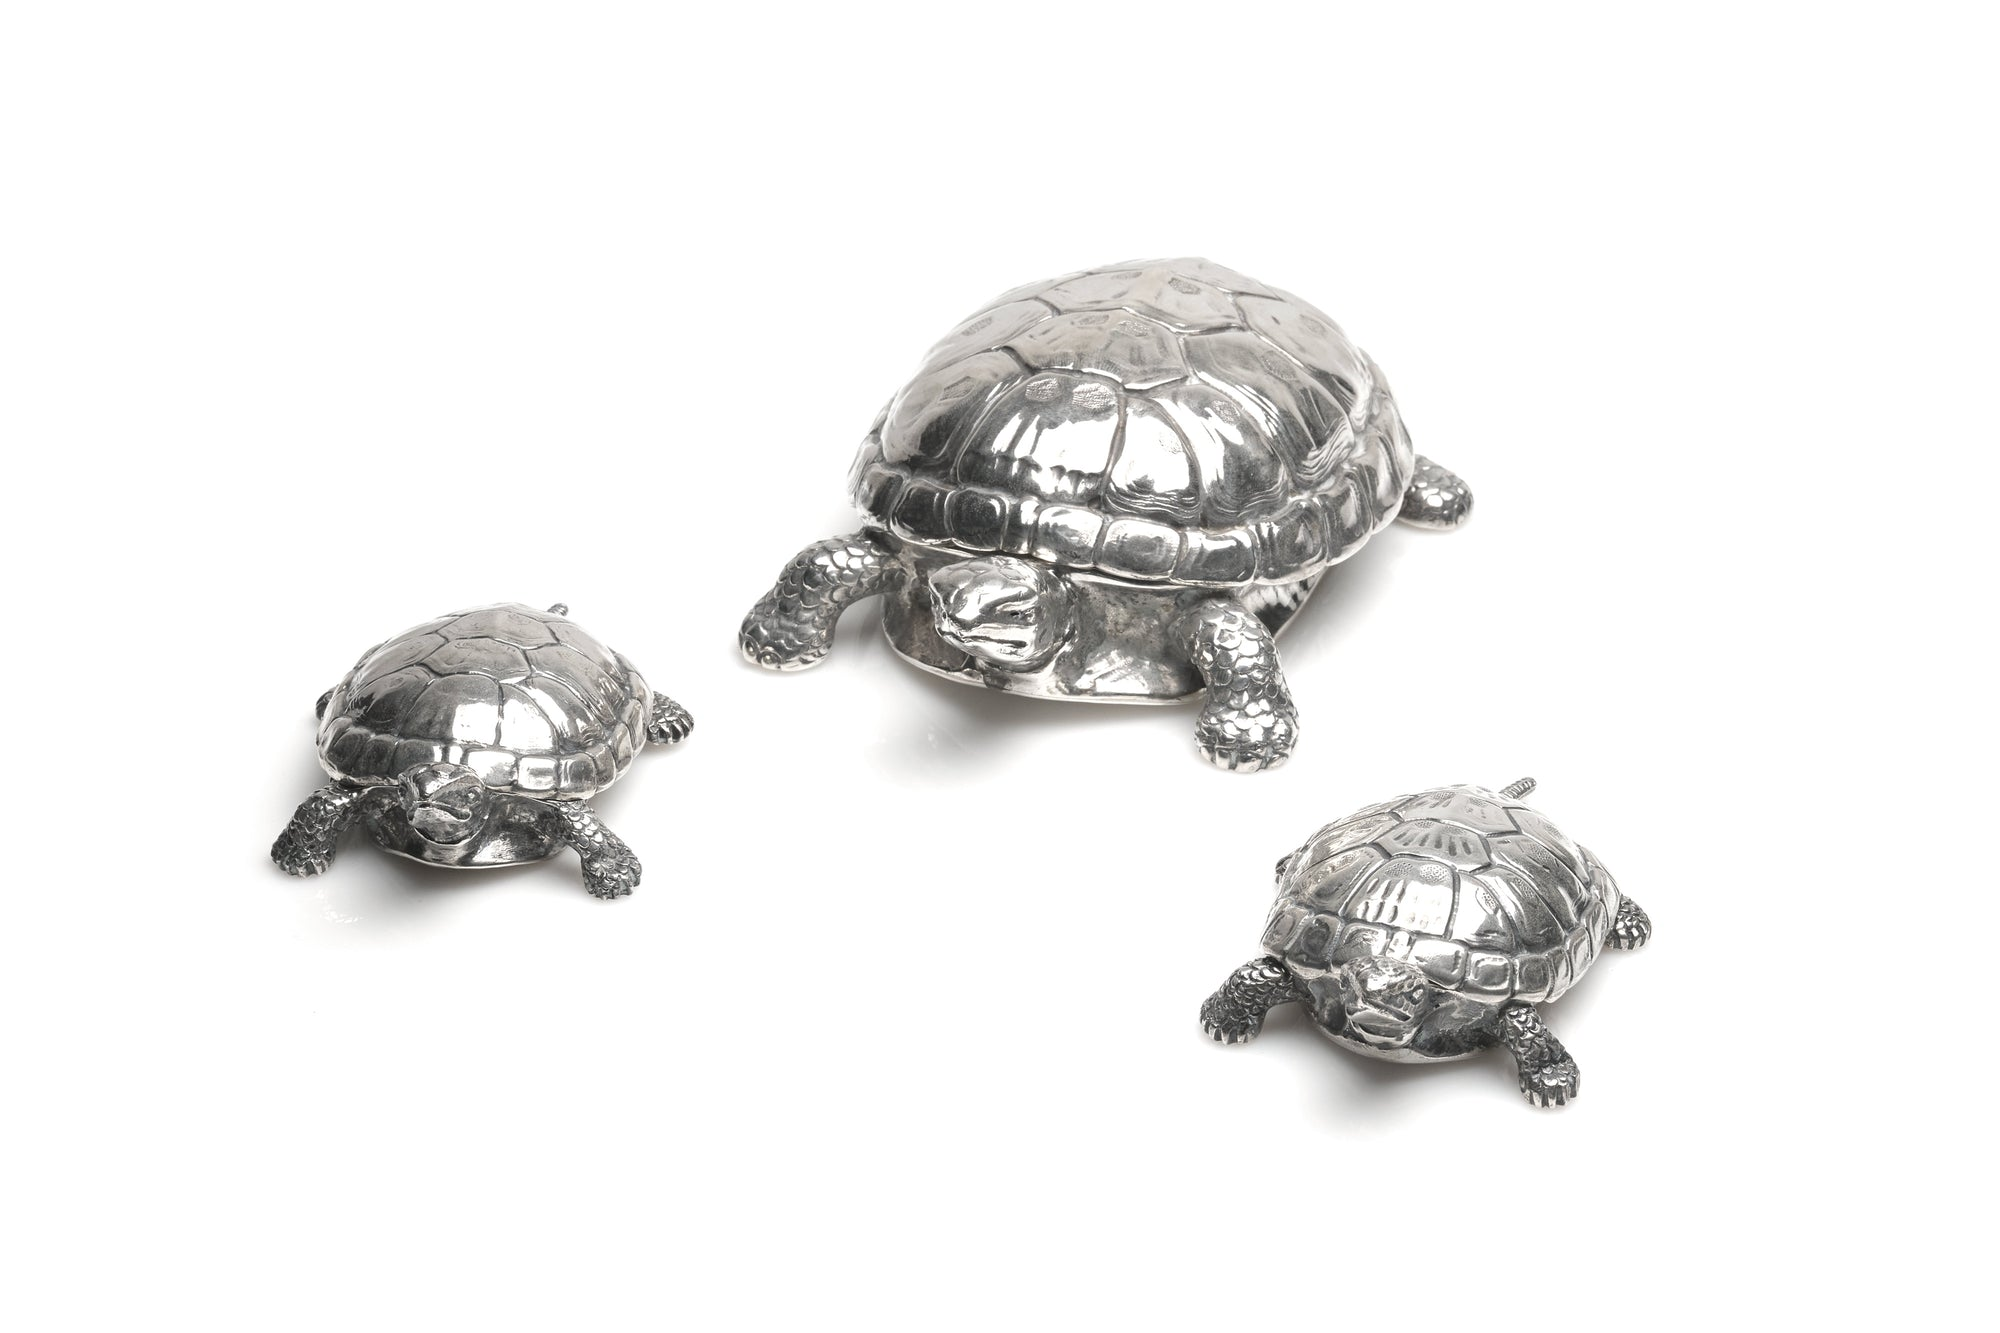 Tiffany & Co. Sterling Silver Turtle Boxes